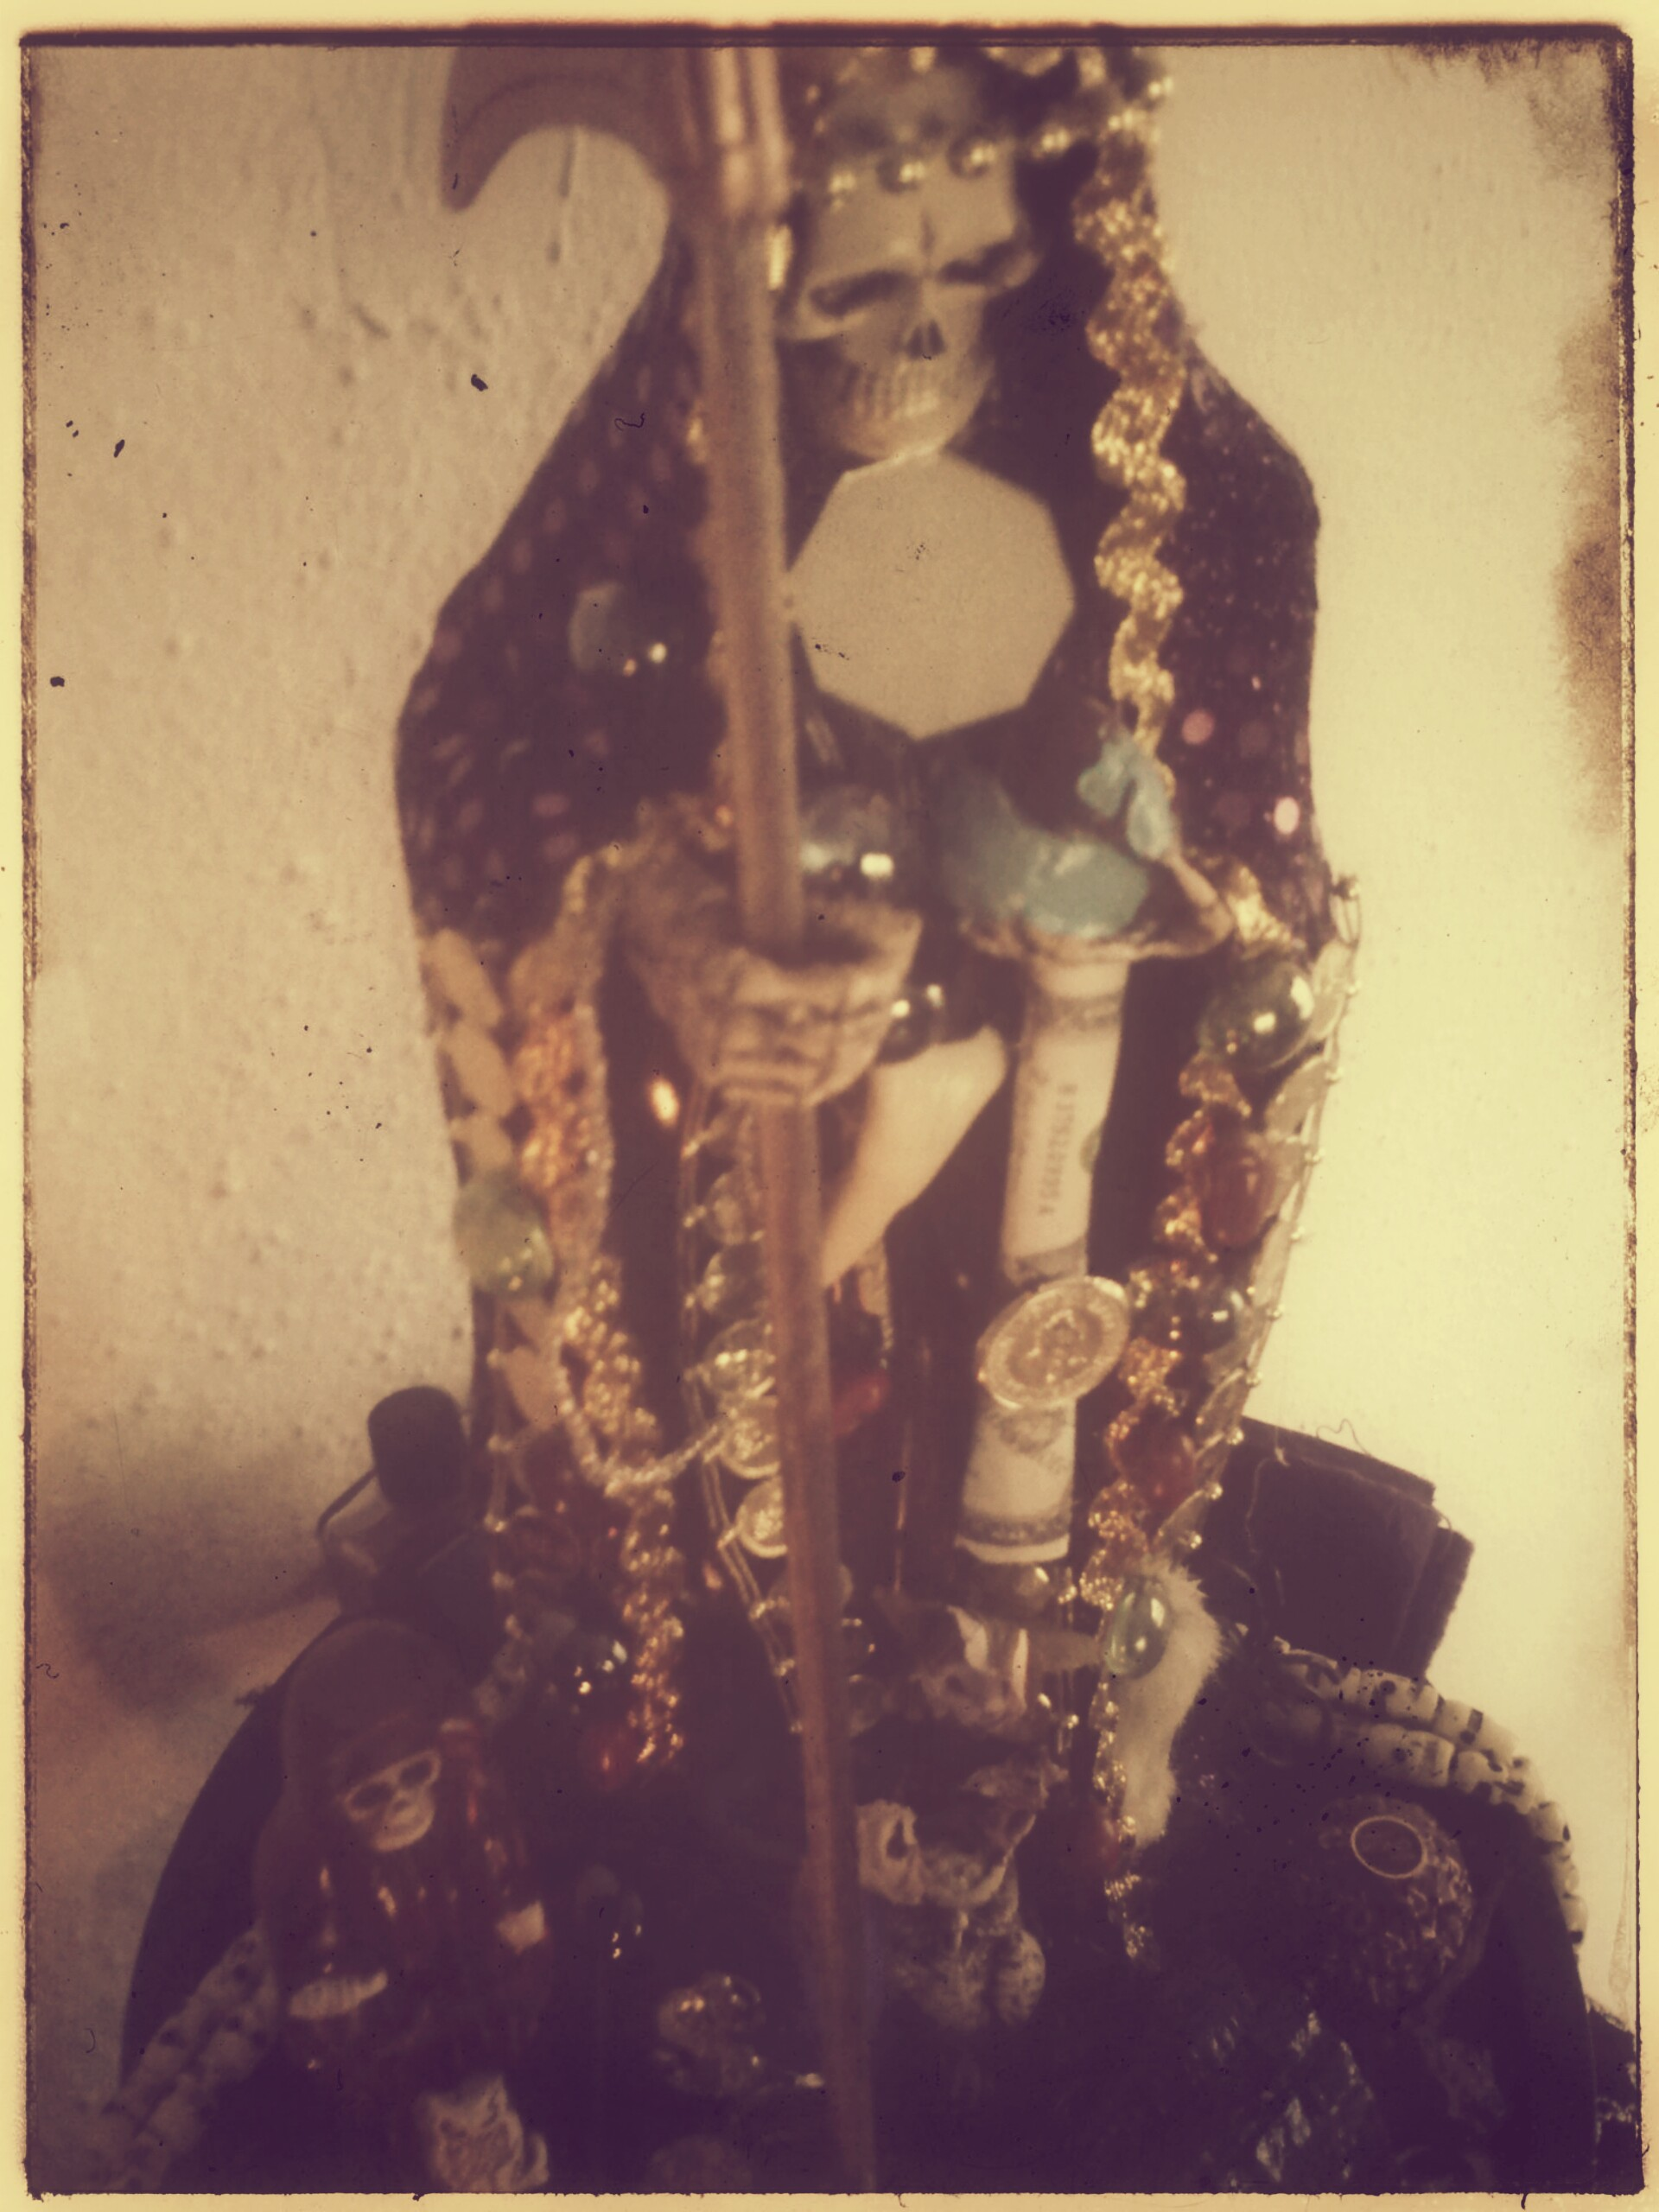 Santa Muerte Veneration Night – House of Magical Illimuniation